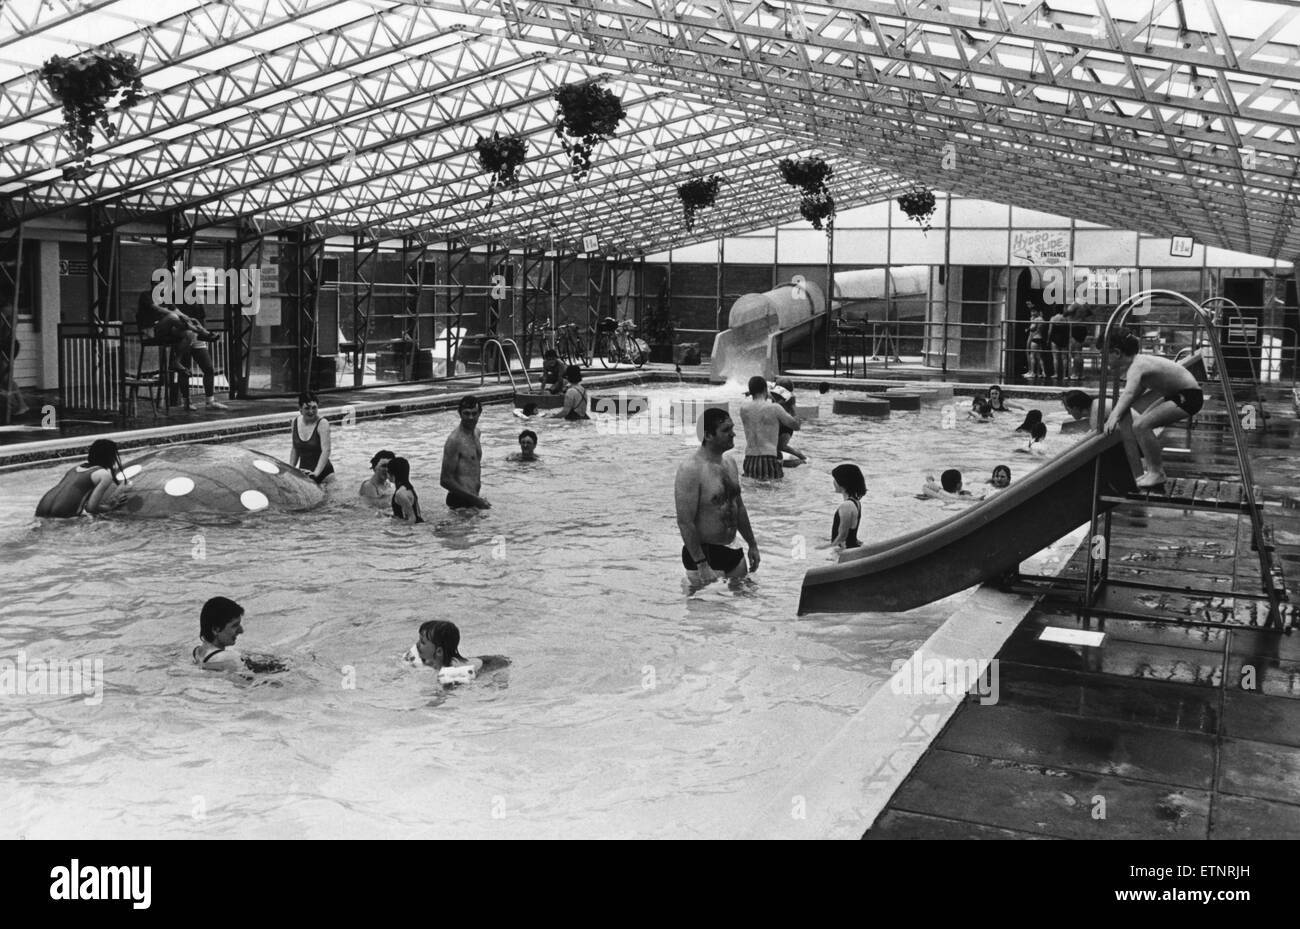 Holiday Makers Enjoy The Swimming Pool At The Sun Centre Trecco Bay Stock Photo 84072761 Alamy